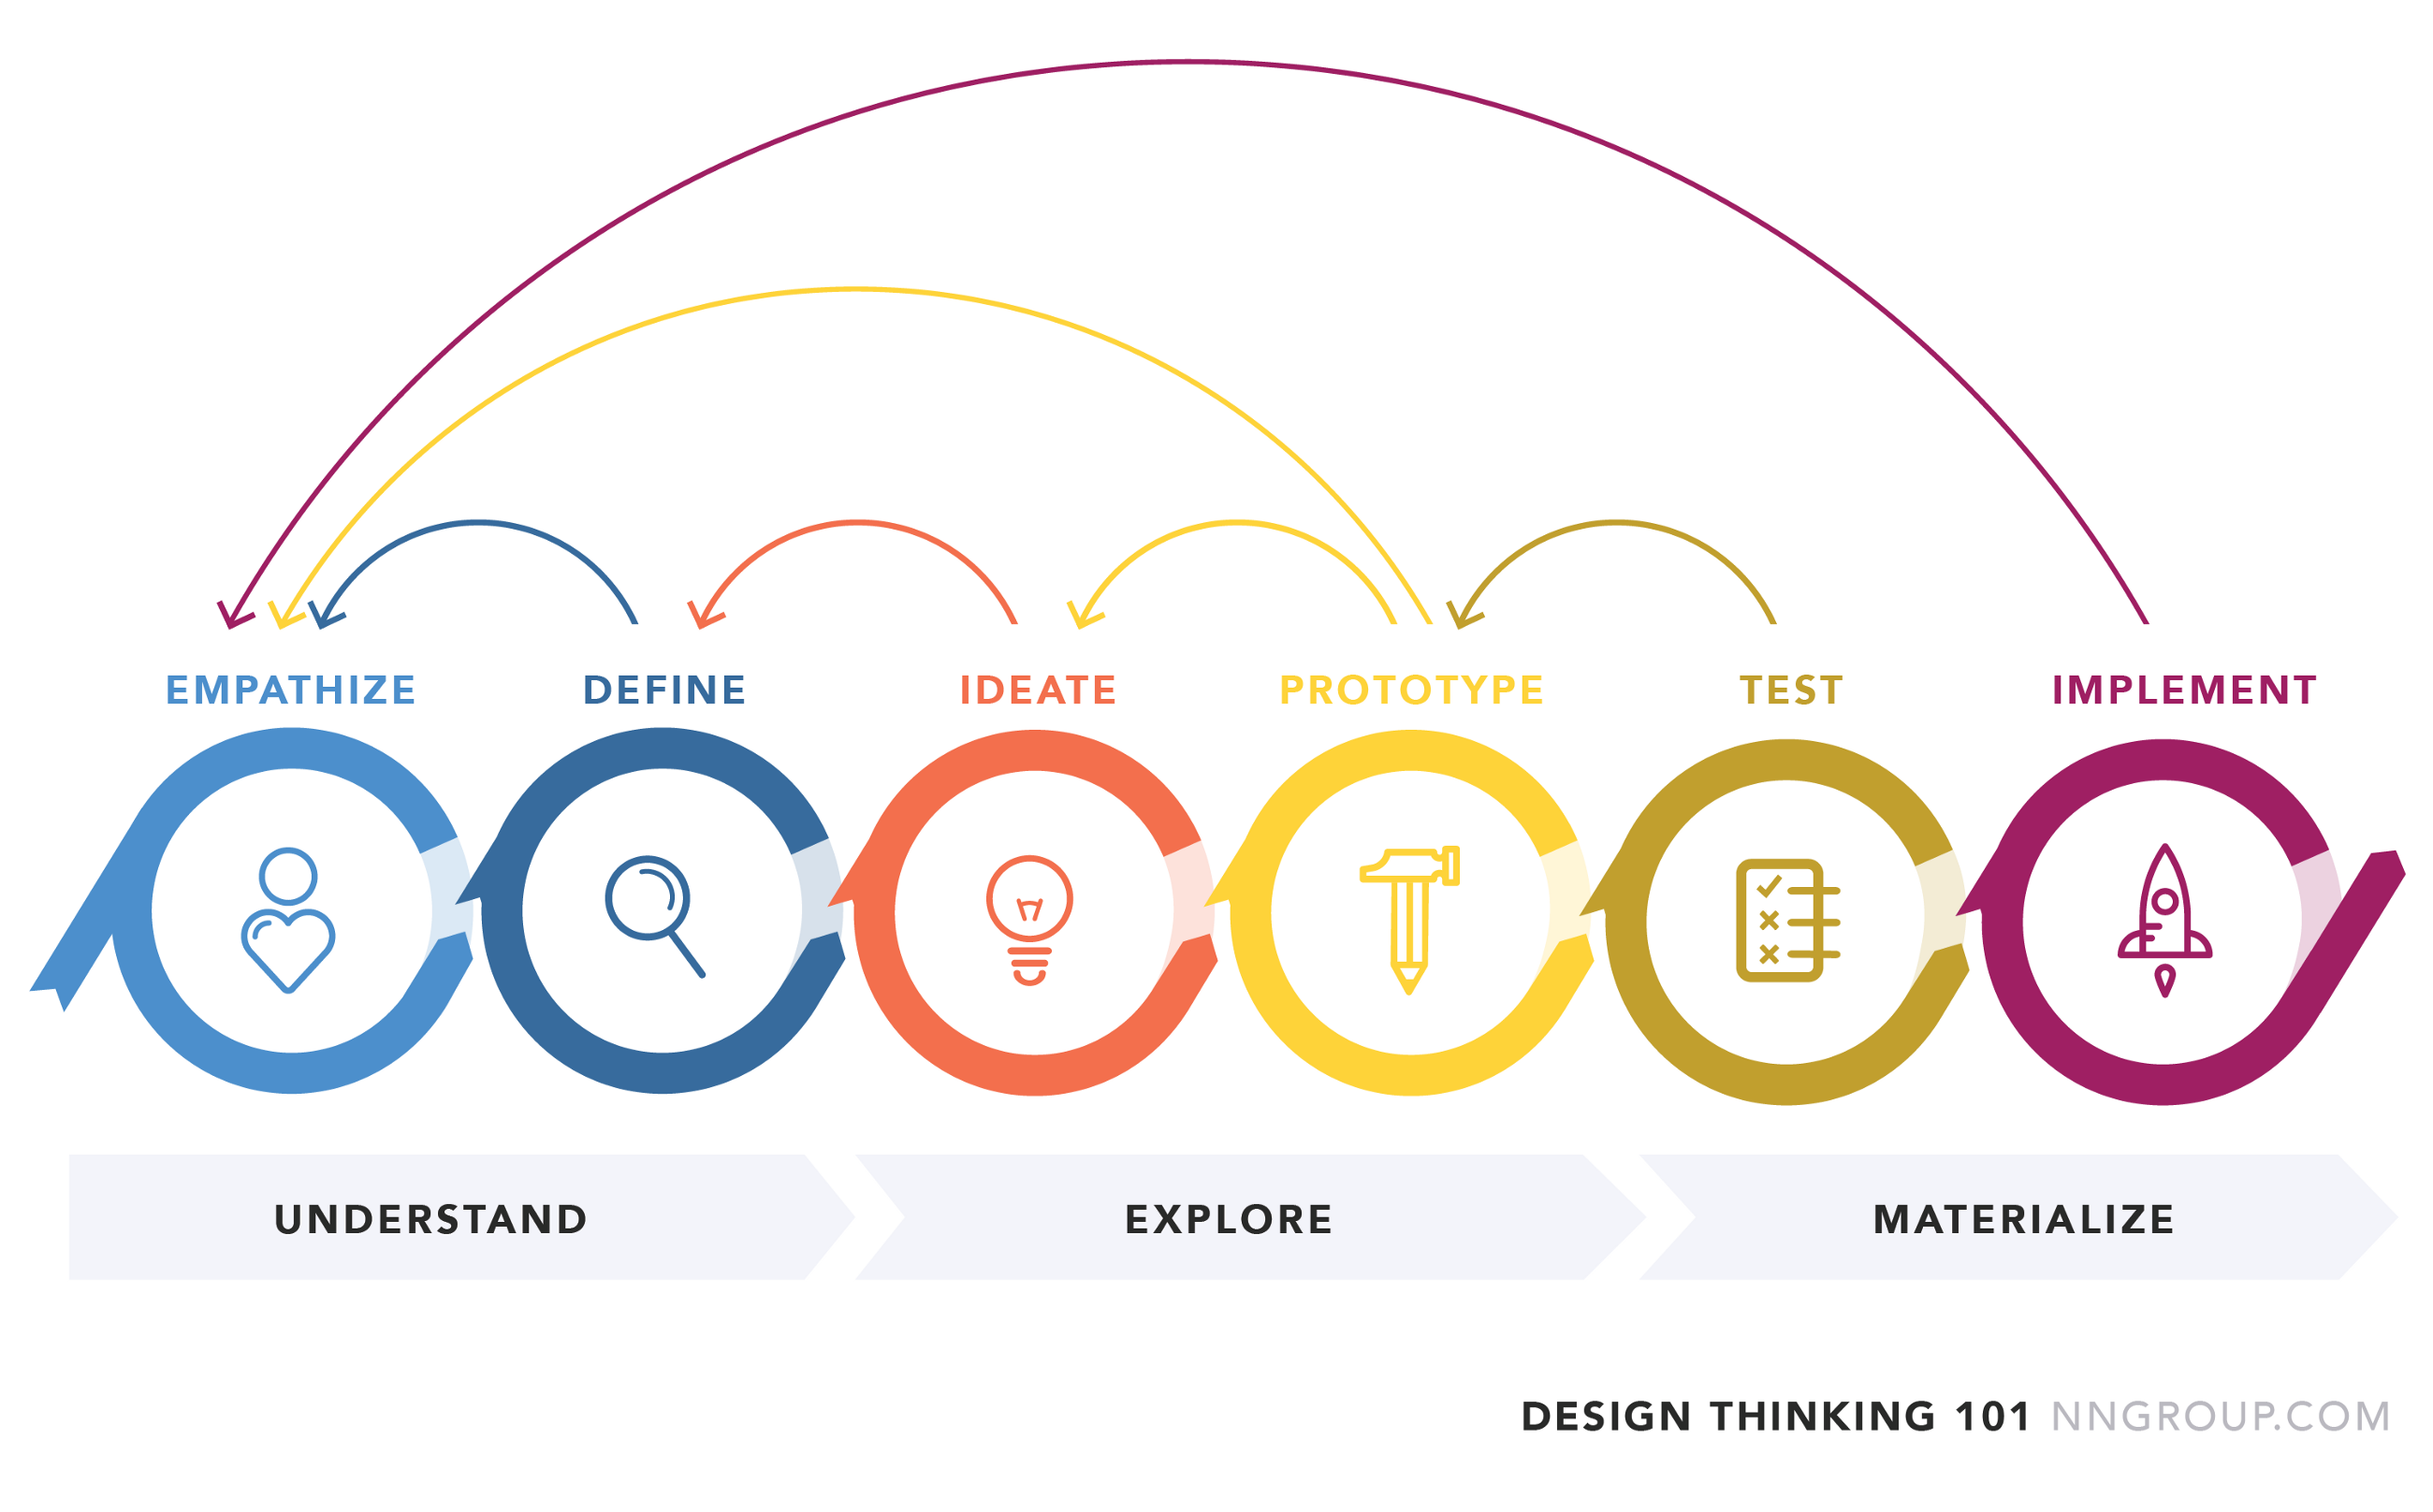 The role of the sole UX Designer in an Agile Product Team